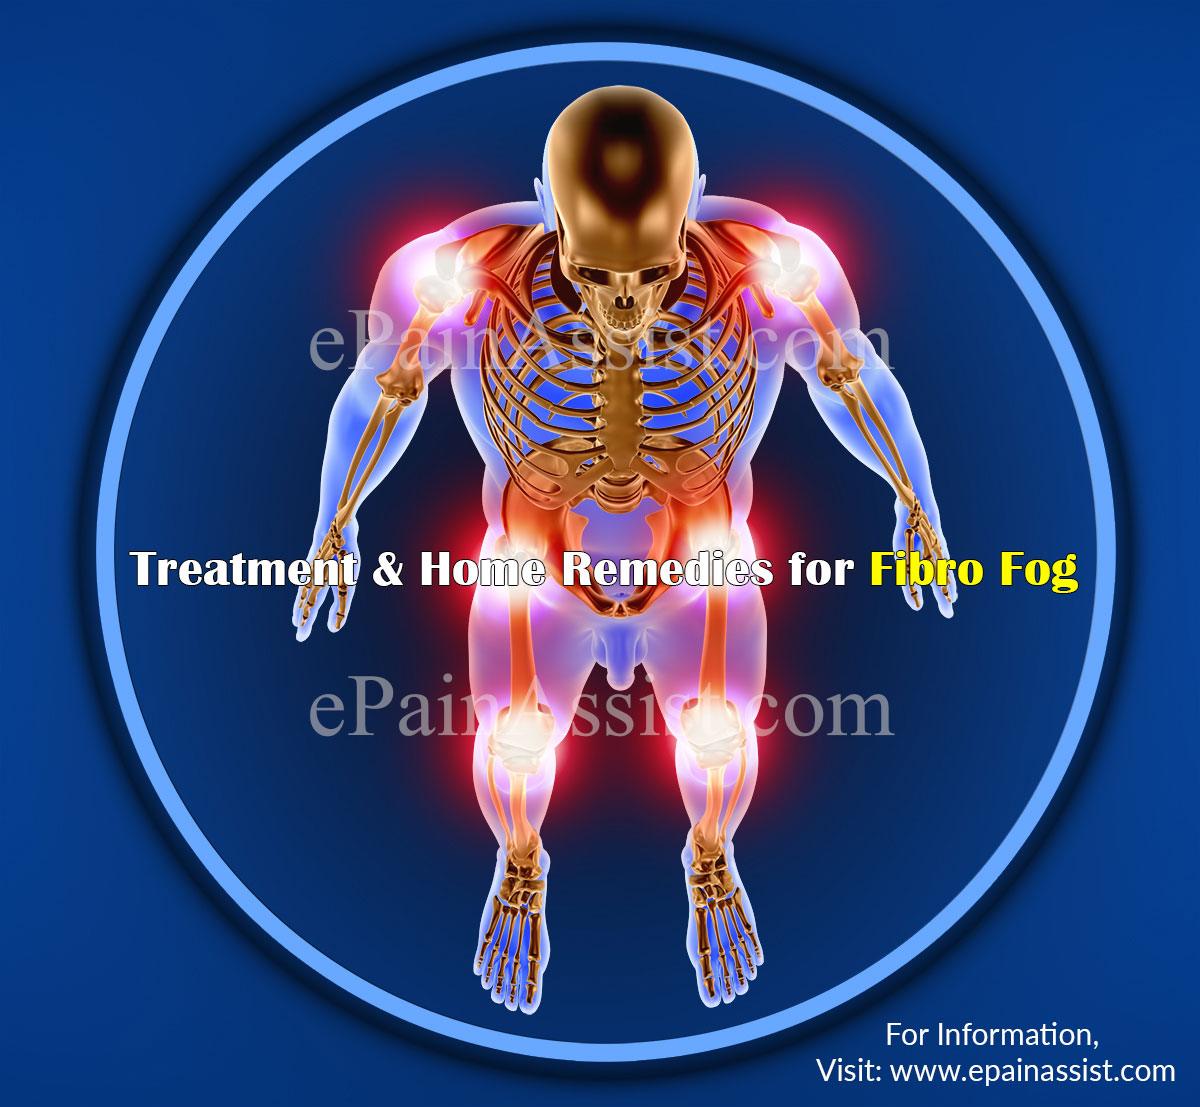 Treatment & Home Remedies for Fibro Fog